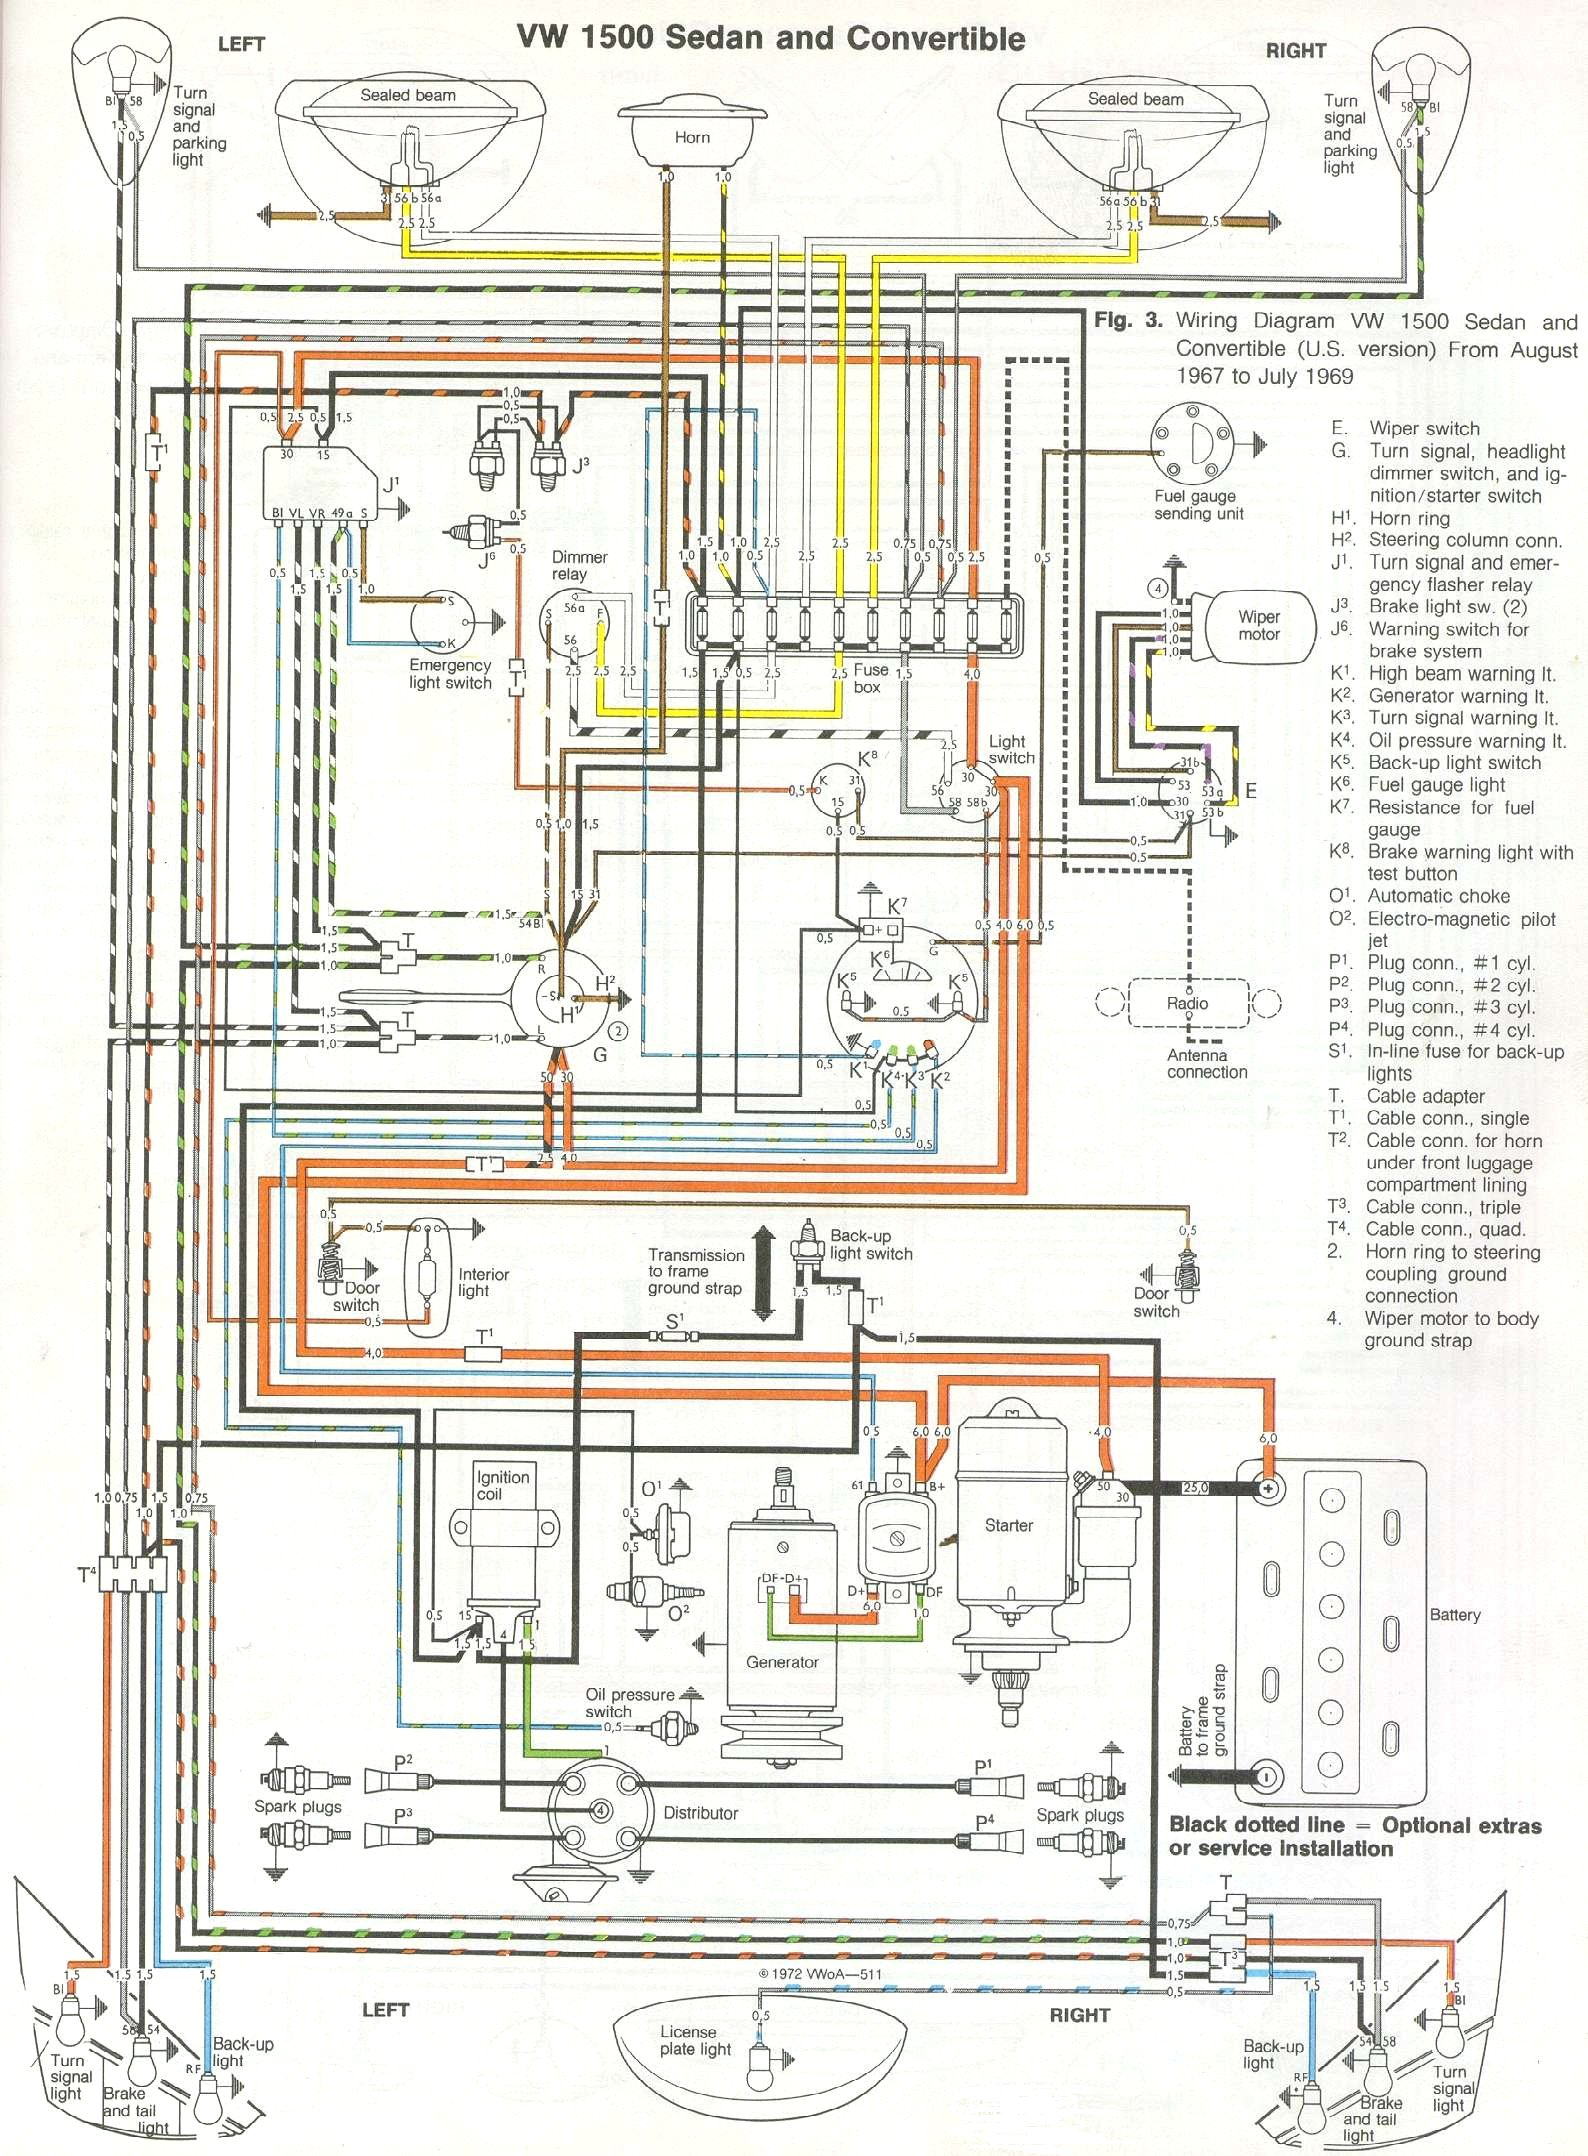 bug_6869 thesamba com type 1 wiring diagrams find wiring diagram for 87 ford f 150 at soozxer.org